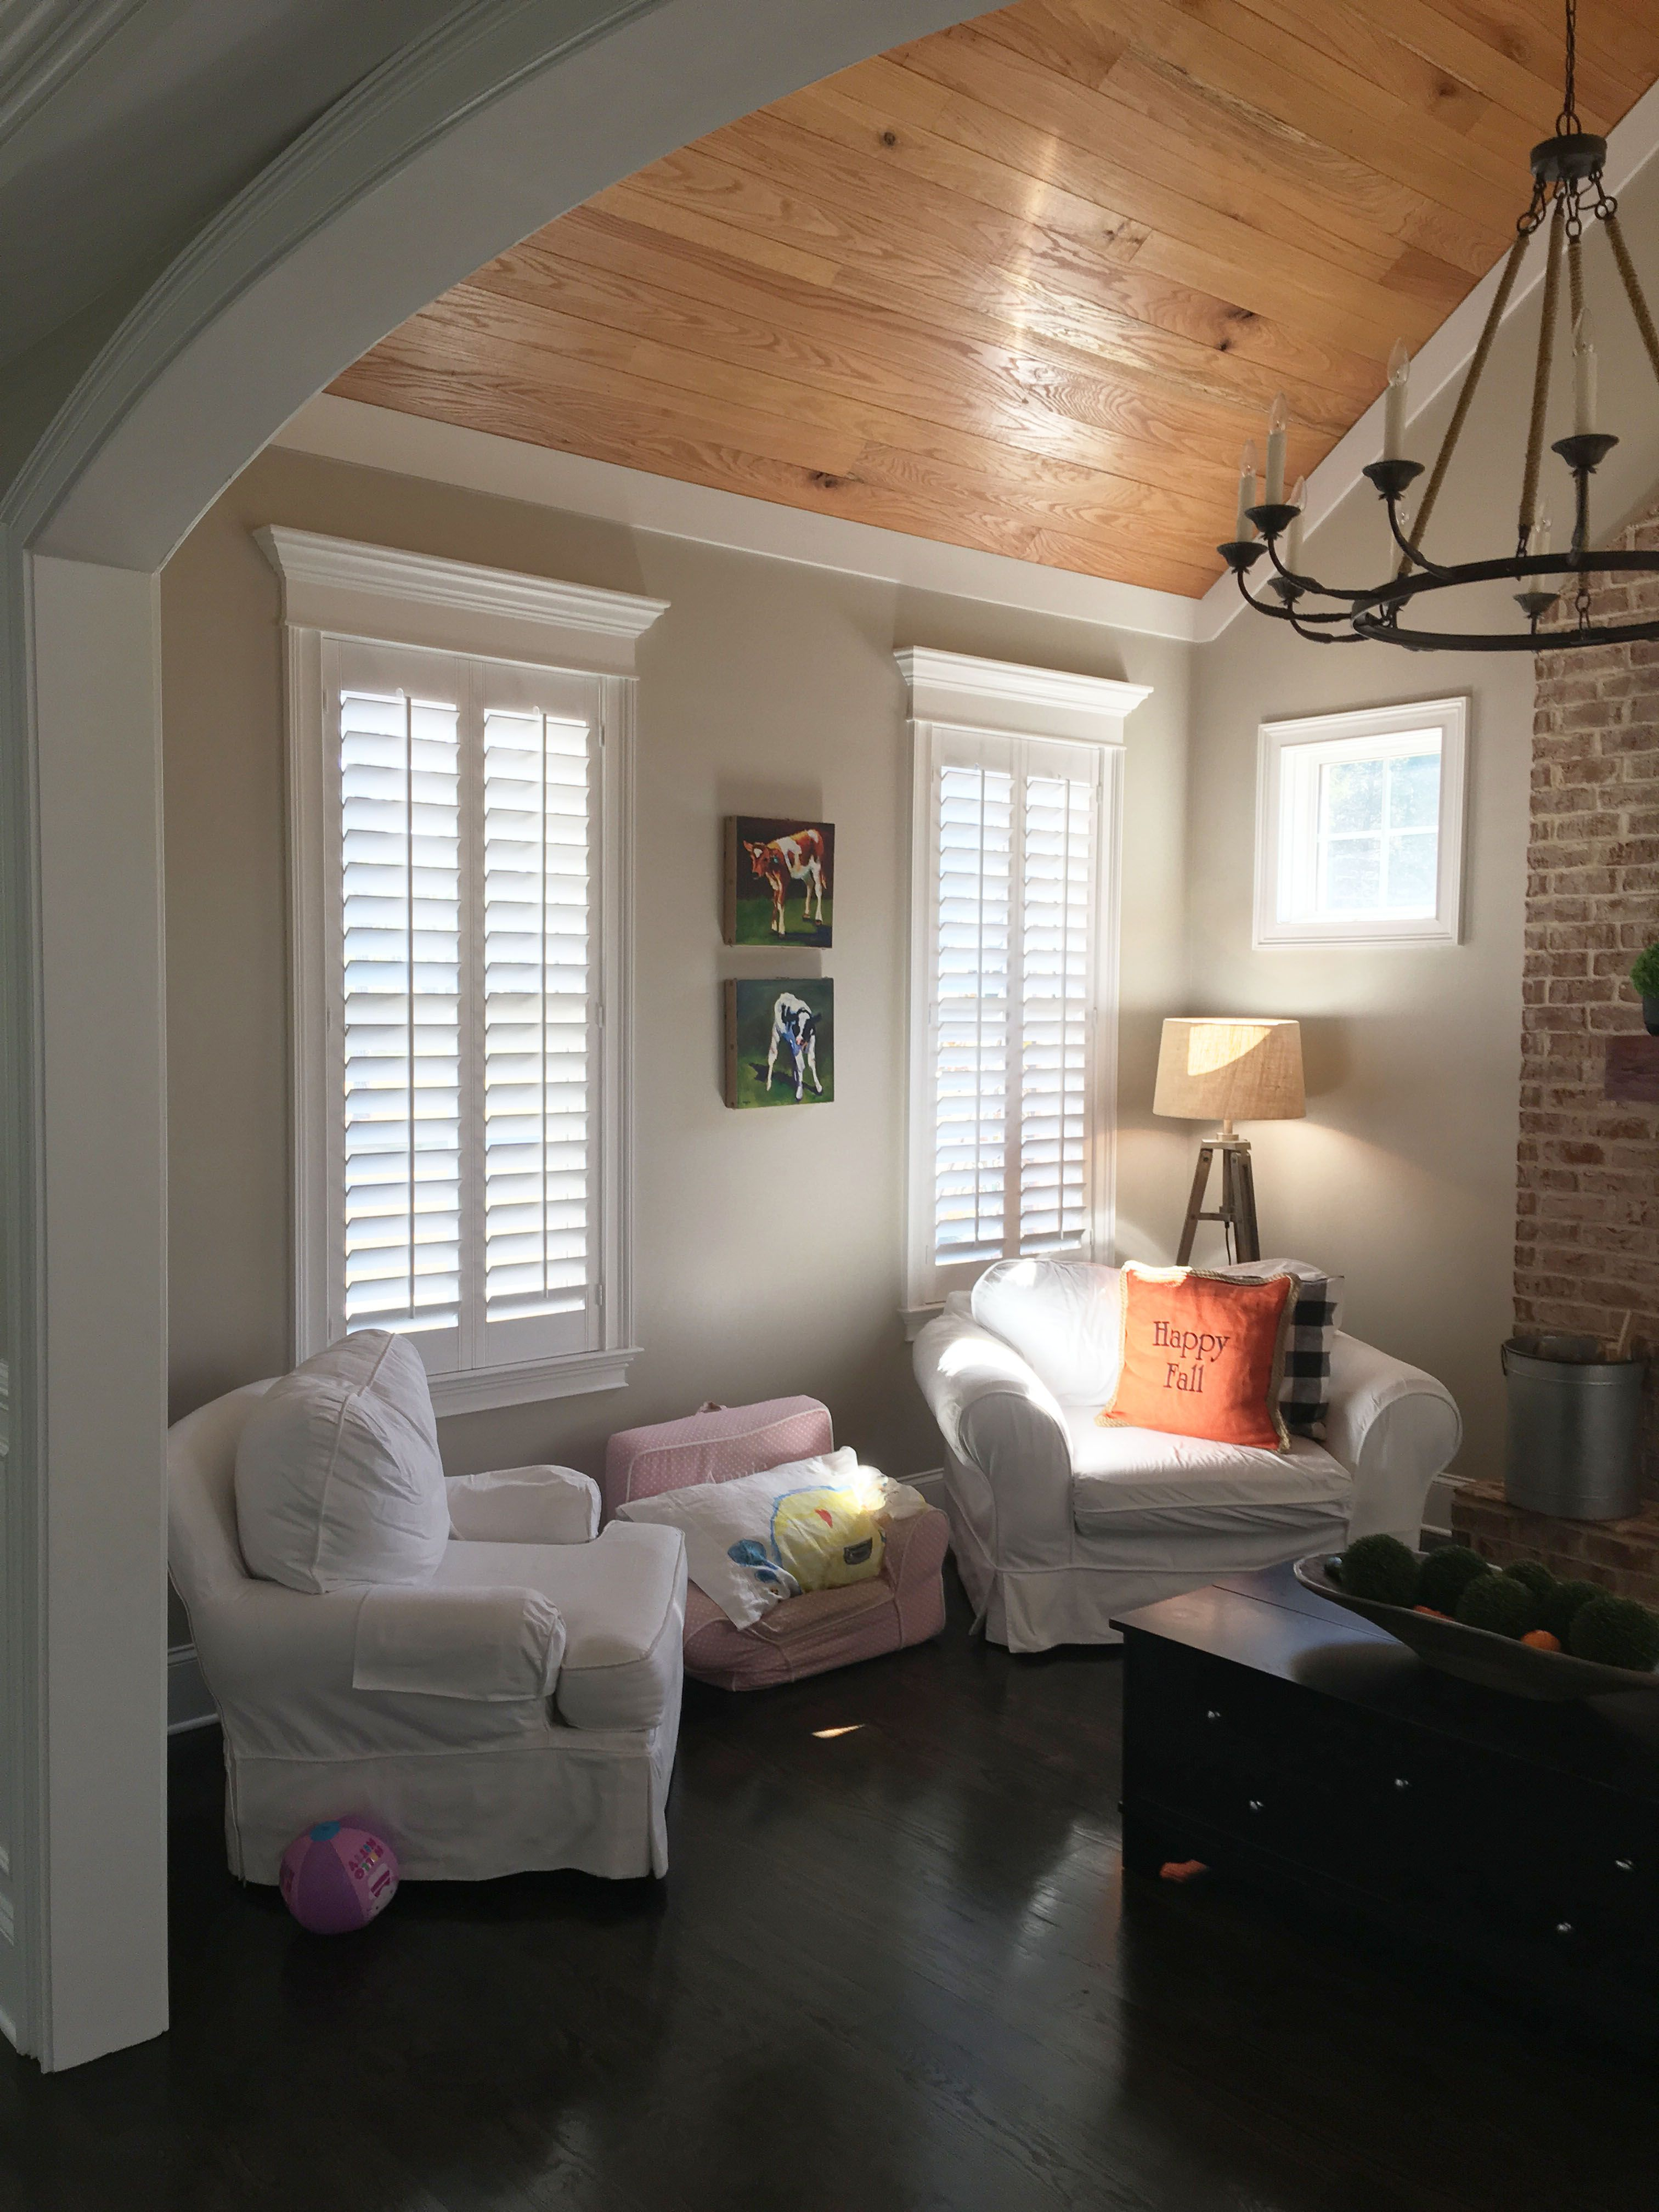 Pin On Improvement Ideas #plantation #shutters #living #room